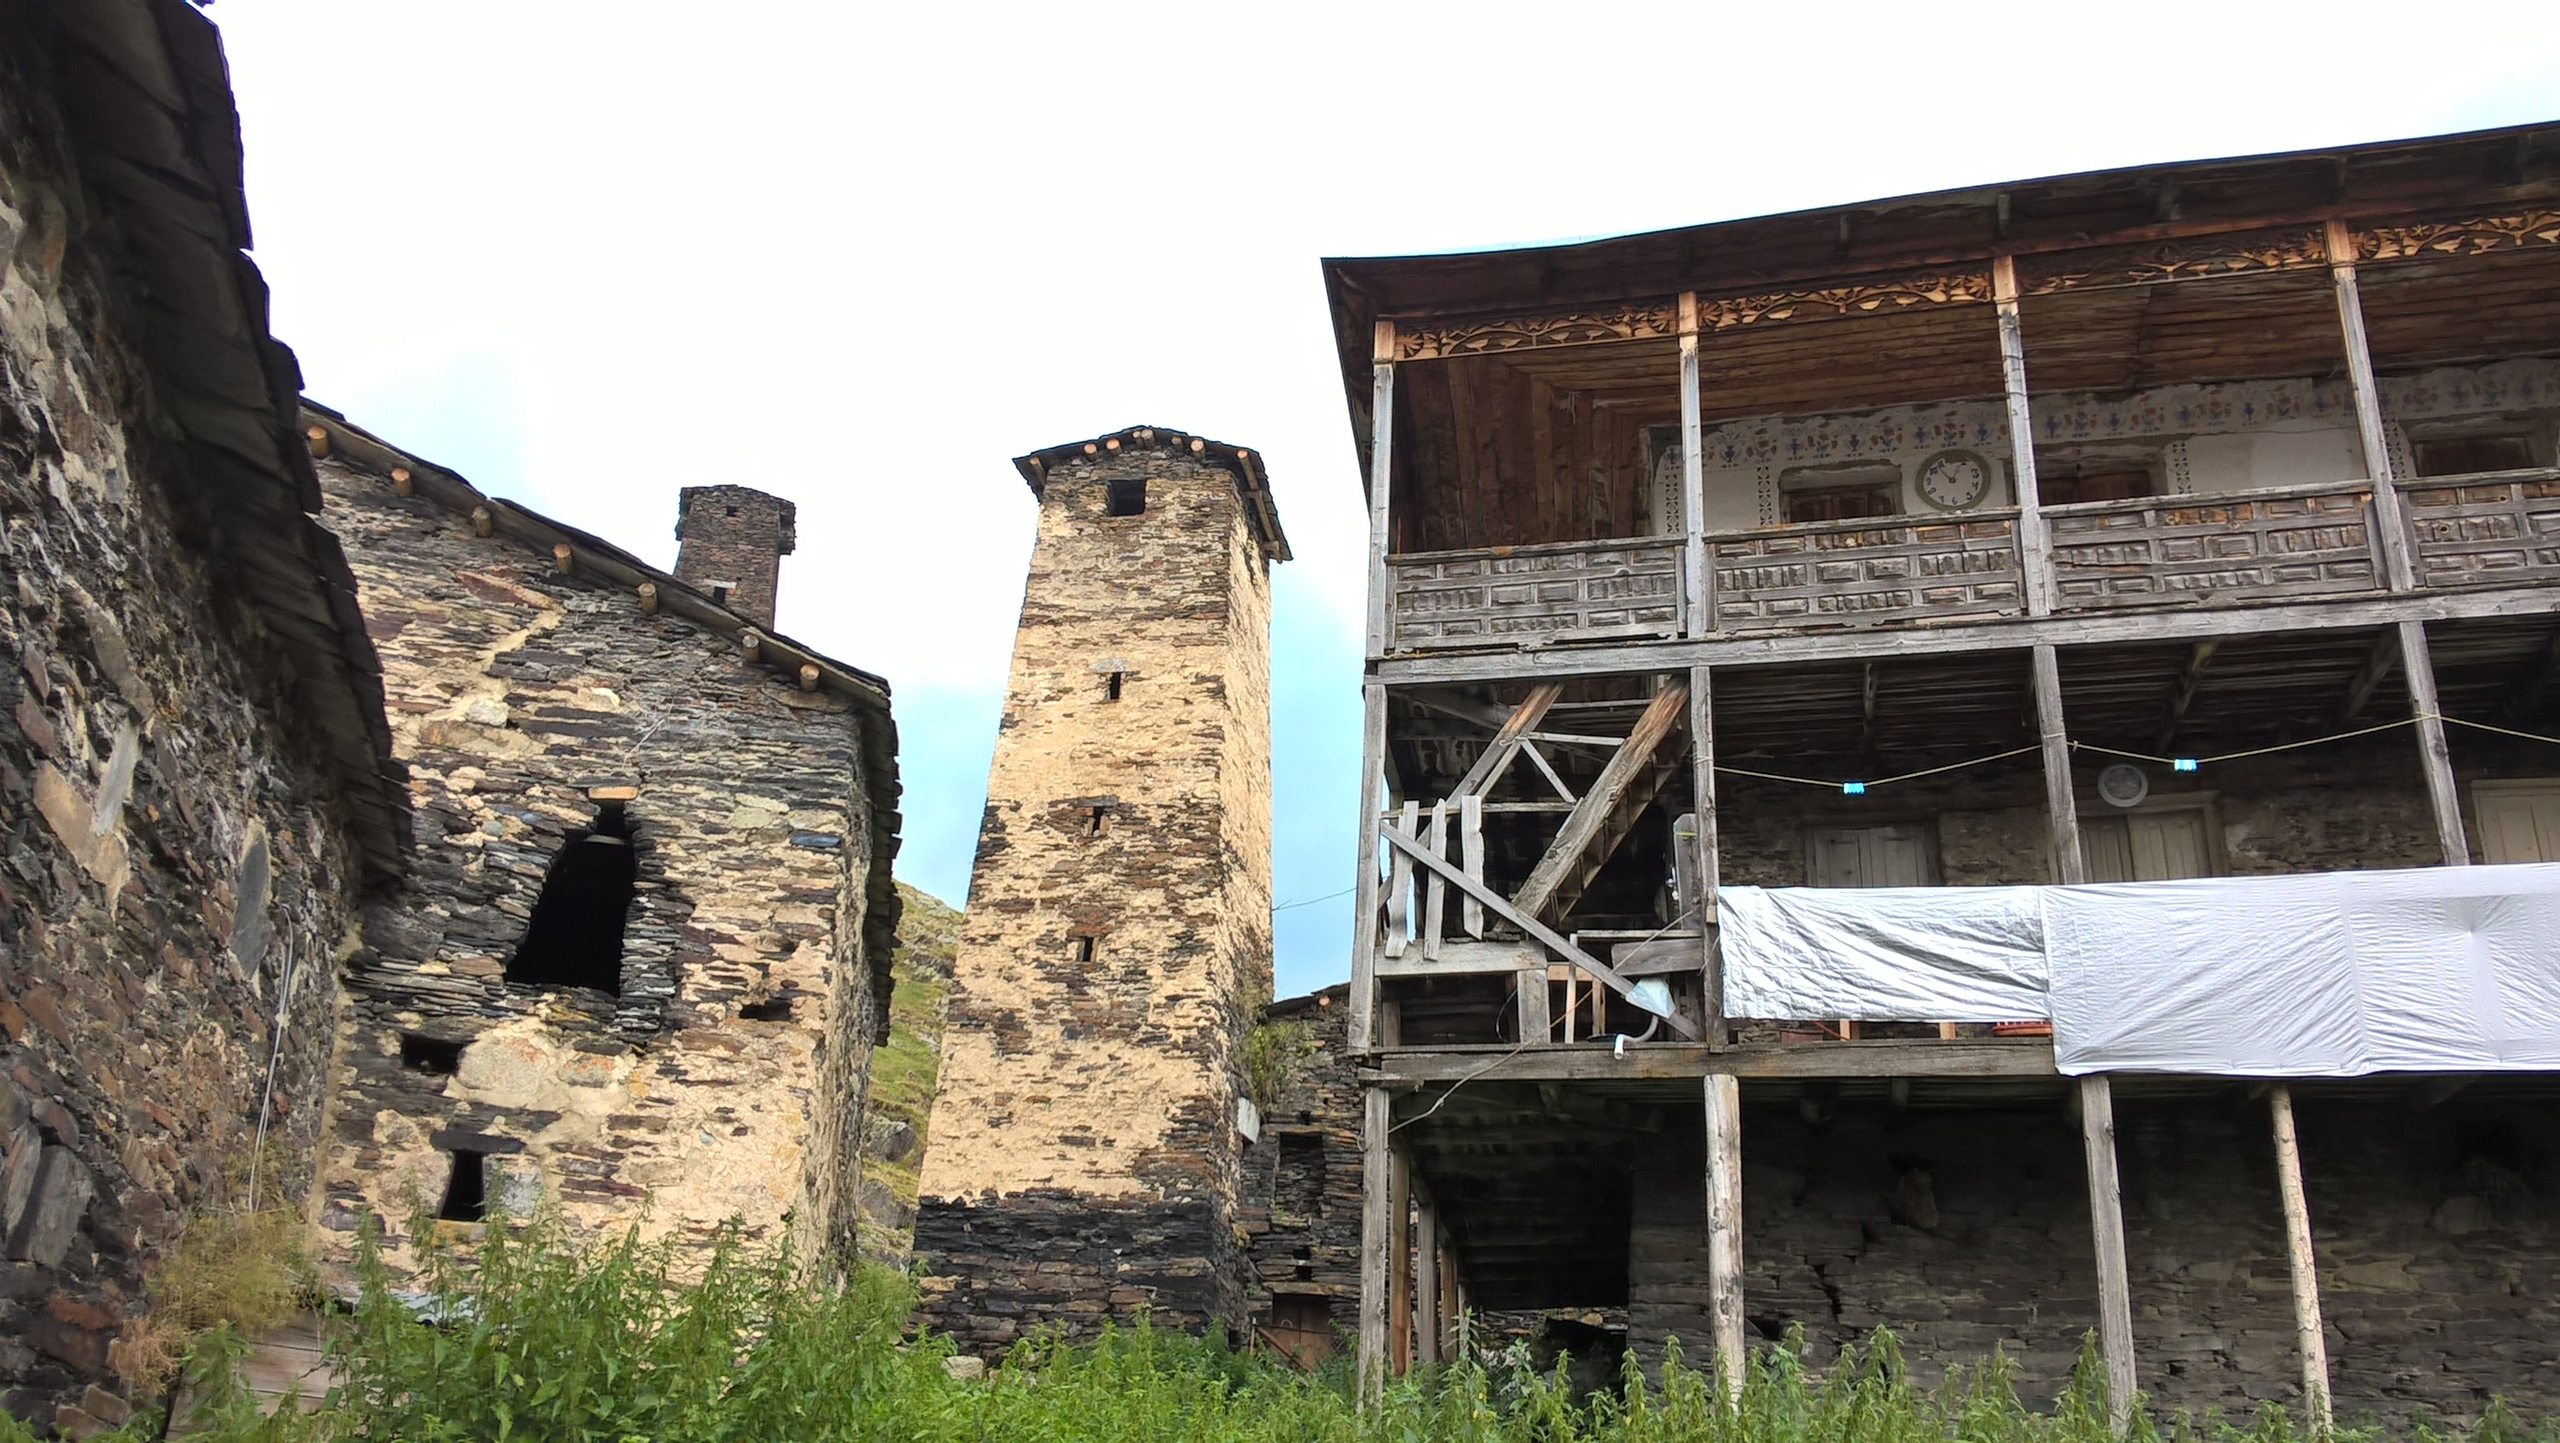 a lot of interesting old towers and houses